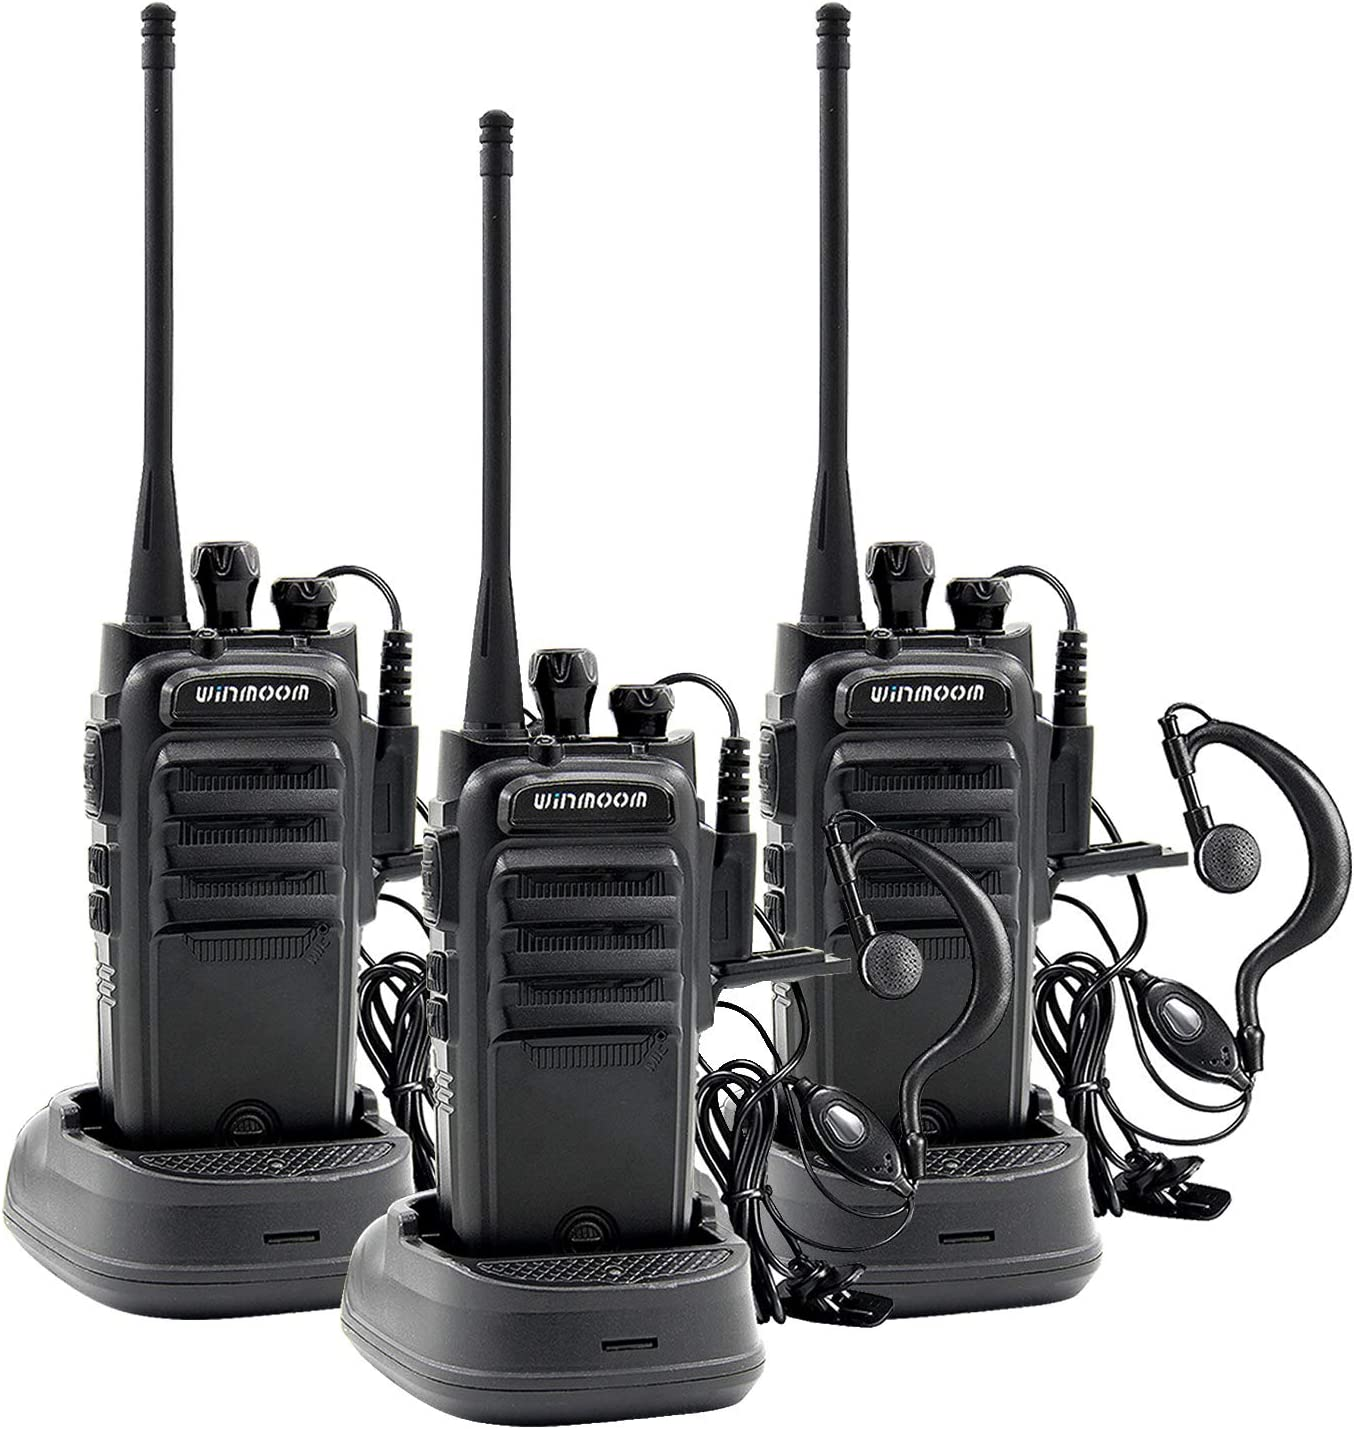 Winmoom Walkie Talkies Long Range Rechargeable Two-Way Radios Earpiece 3 Pack UHF 400-480Mhz Li-ion Battery Charger Included